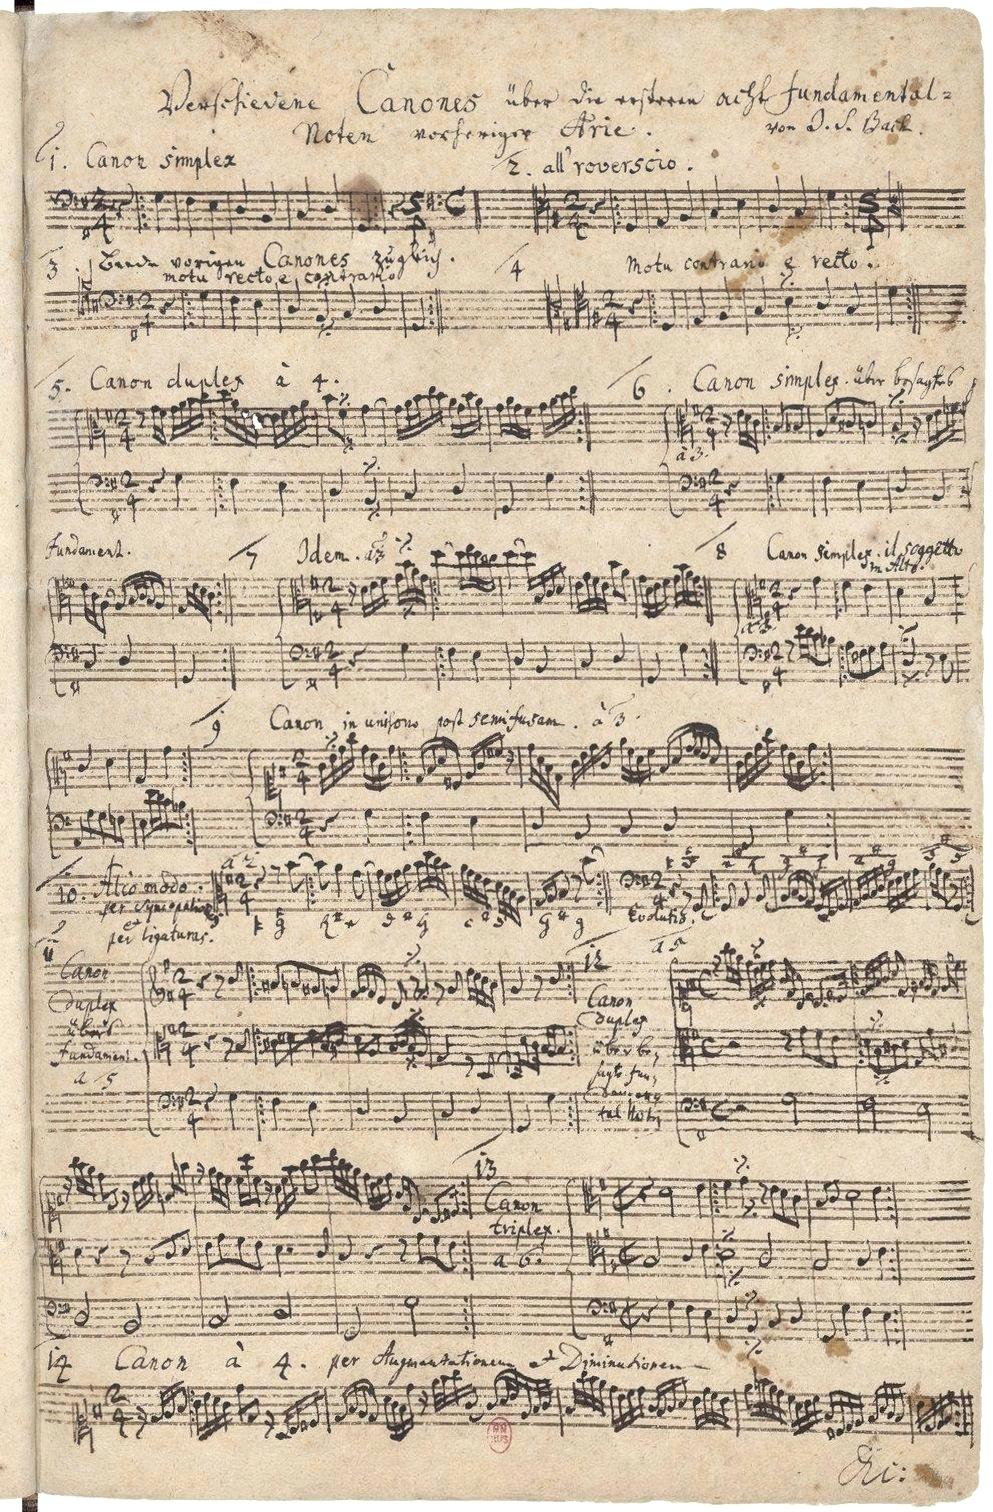 J.S. Bach, Verschiedene Canones über die ersten acht Fundamental-Noten vorheriger Arie (Various Canons on the First Eight Fundamental Notes of the First Aria), from the Goldberg Variations, BWV 1087, composed between 1741 and 1750, discovered in Bach's own copy of the Variations in 1974. The score is stored at Bibliothèque Nationale de Paris.